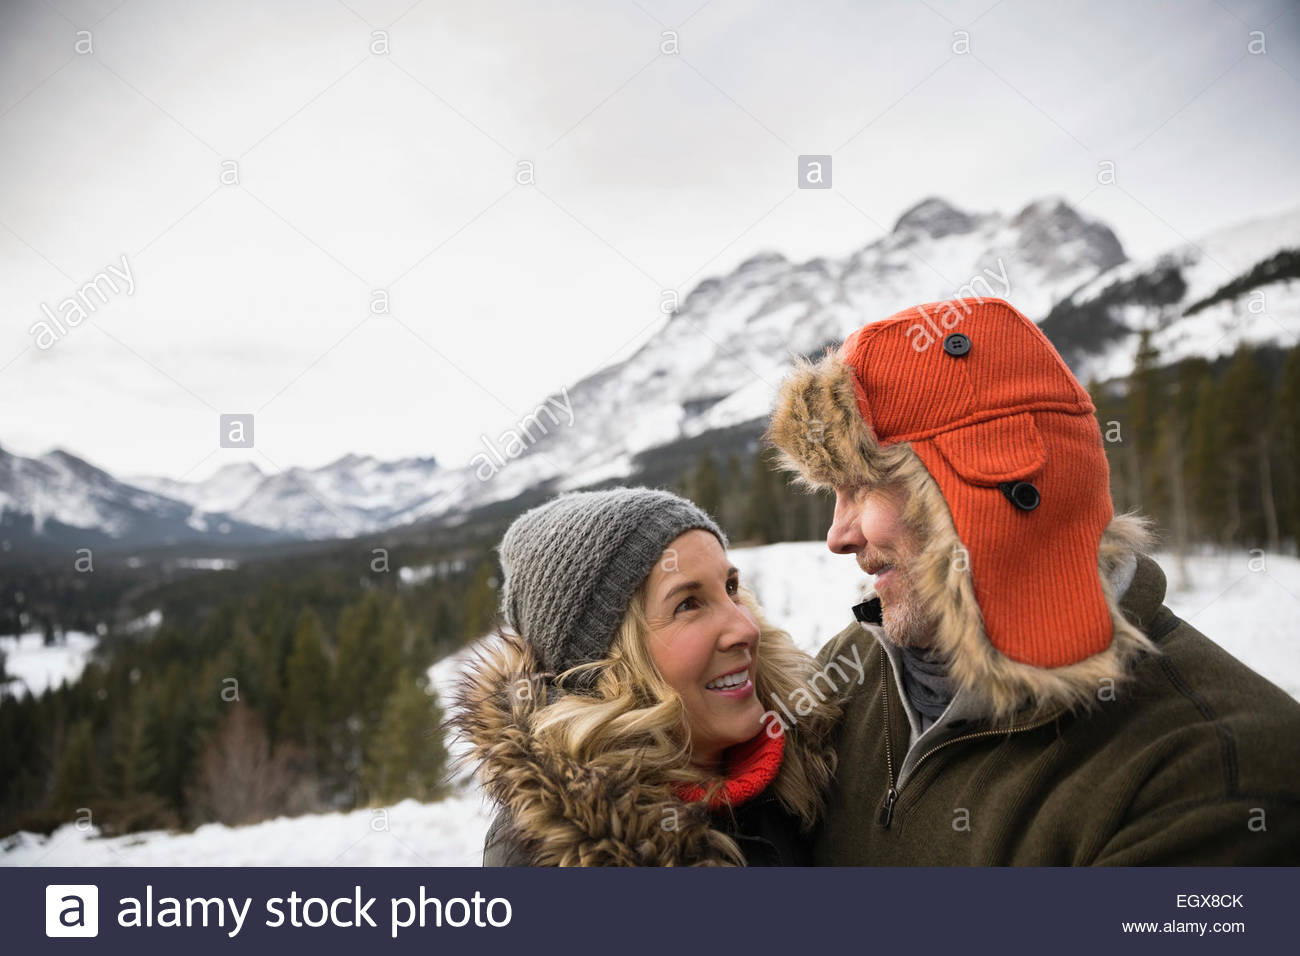 Couple smiling below snowy mountains - Stock Image